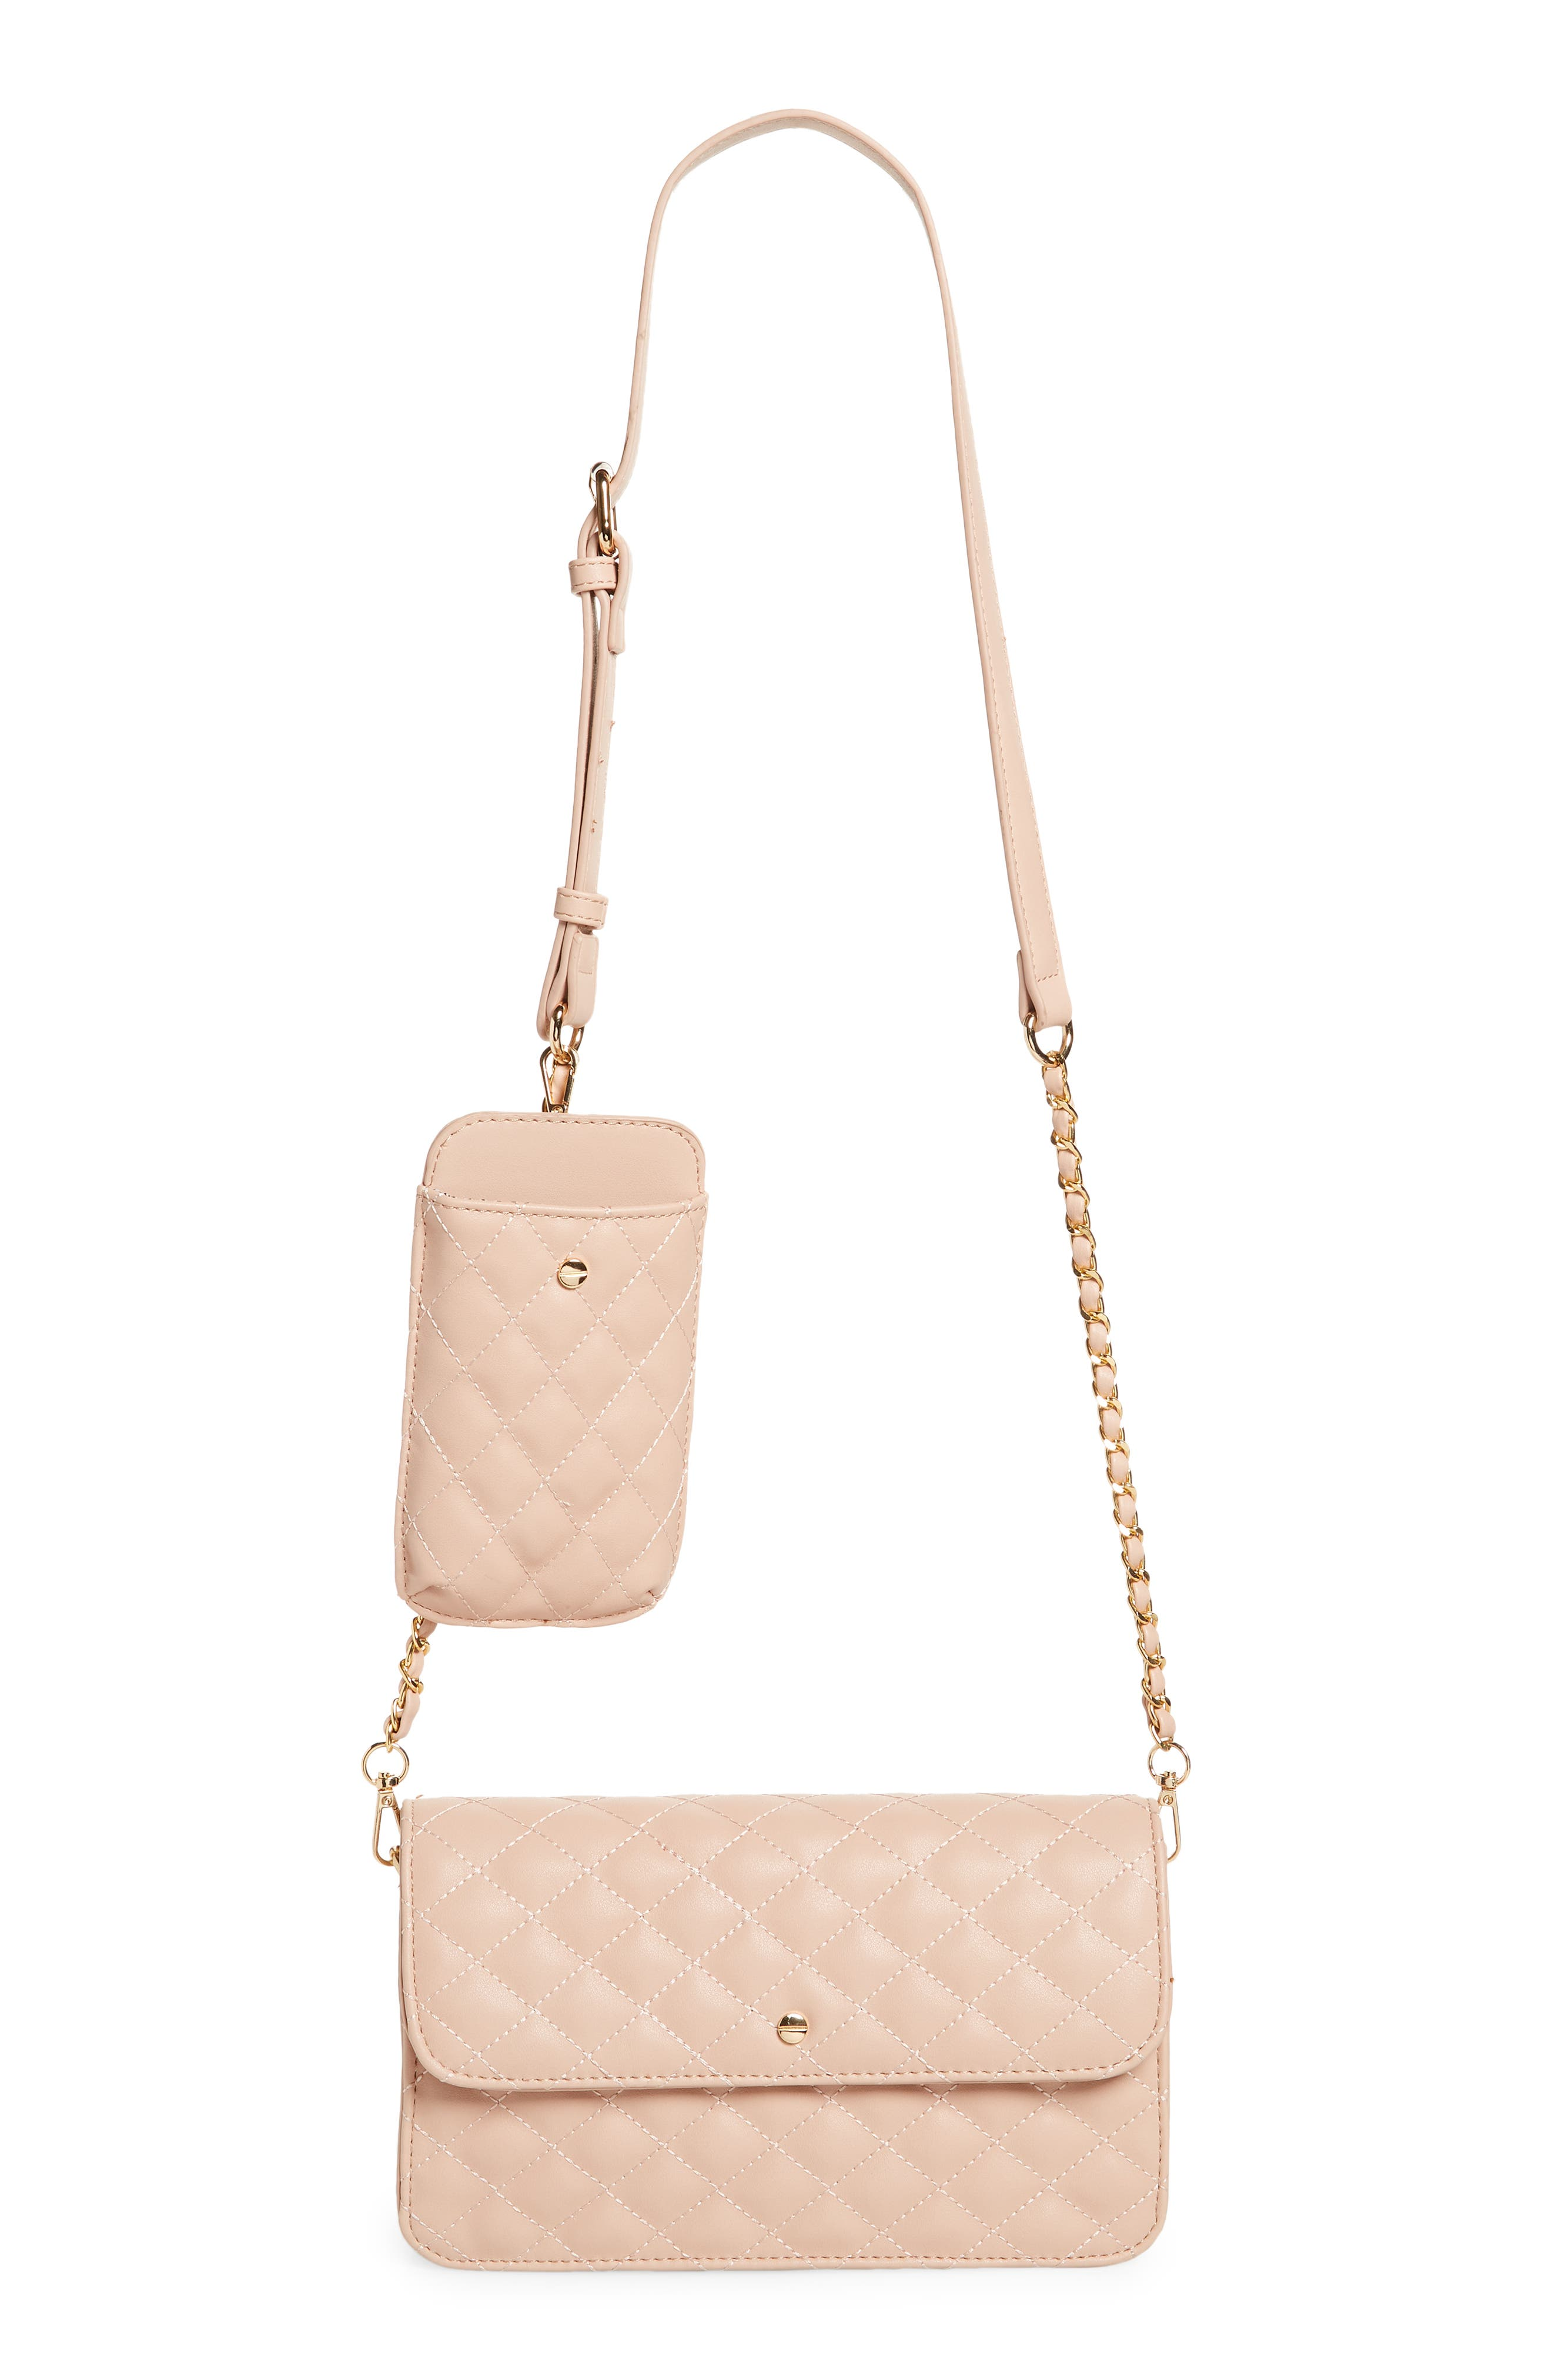 Mali + Lili Winslet Quilted Vegan Leather Crossbody Bag With Detachable Phone Case